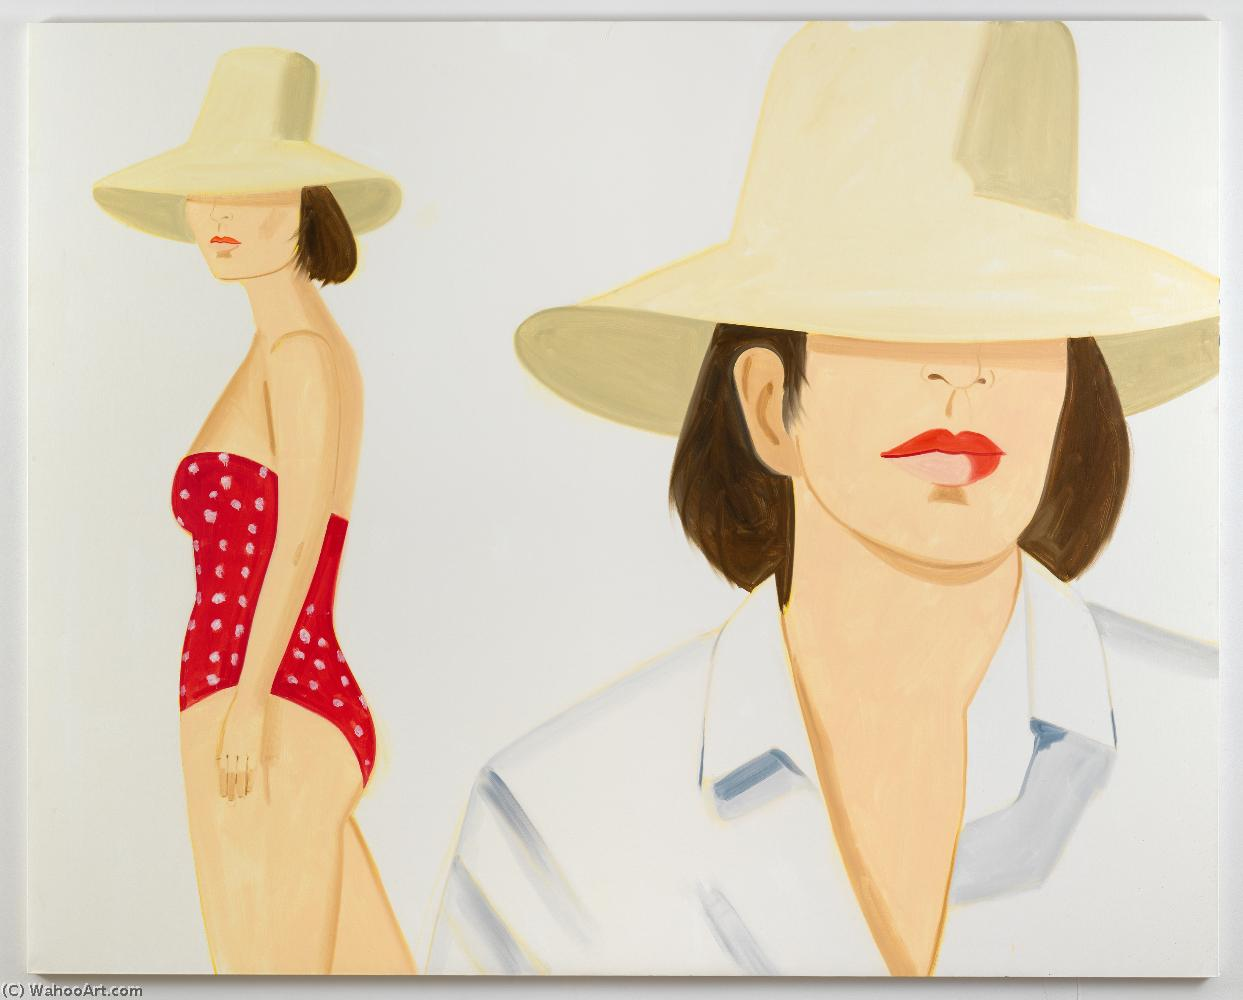 famous painting T008603 - (300dpi) of Alex Katz